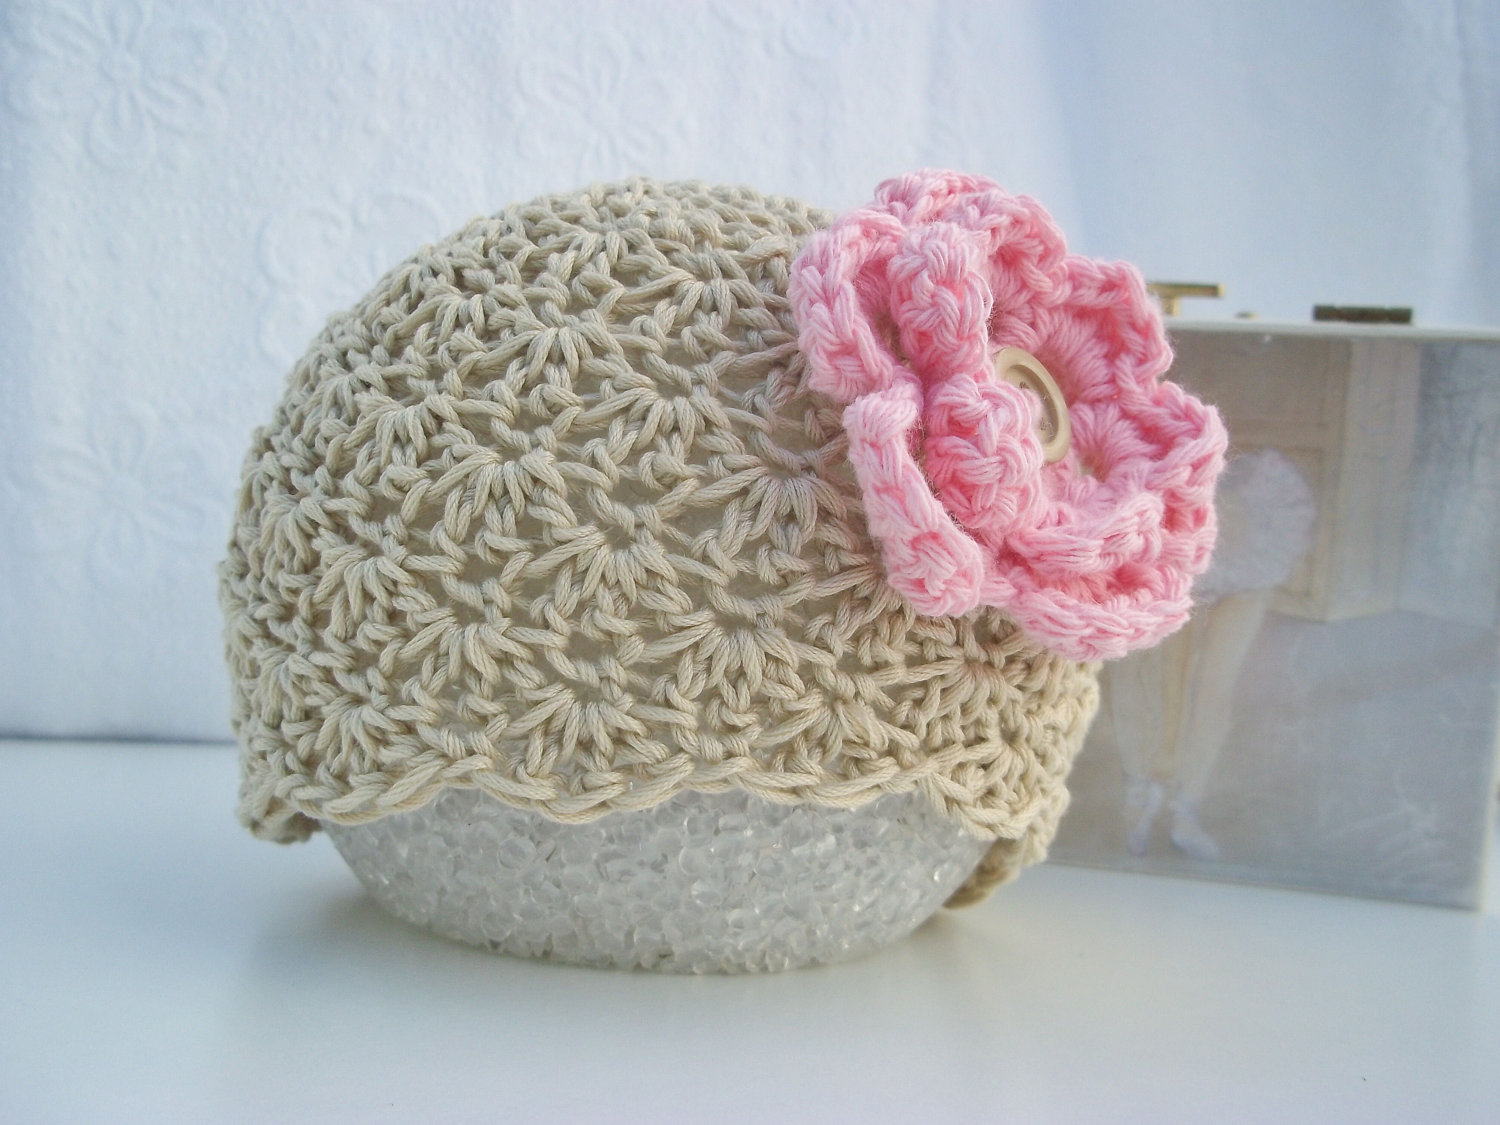 Crocheting Baby Hats : Crochet baby hat - Baby girl hat - Newborn baby hat - Beige - Tan ...